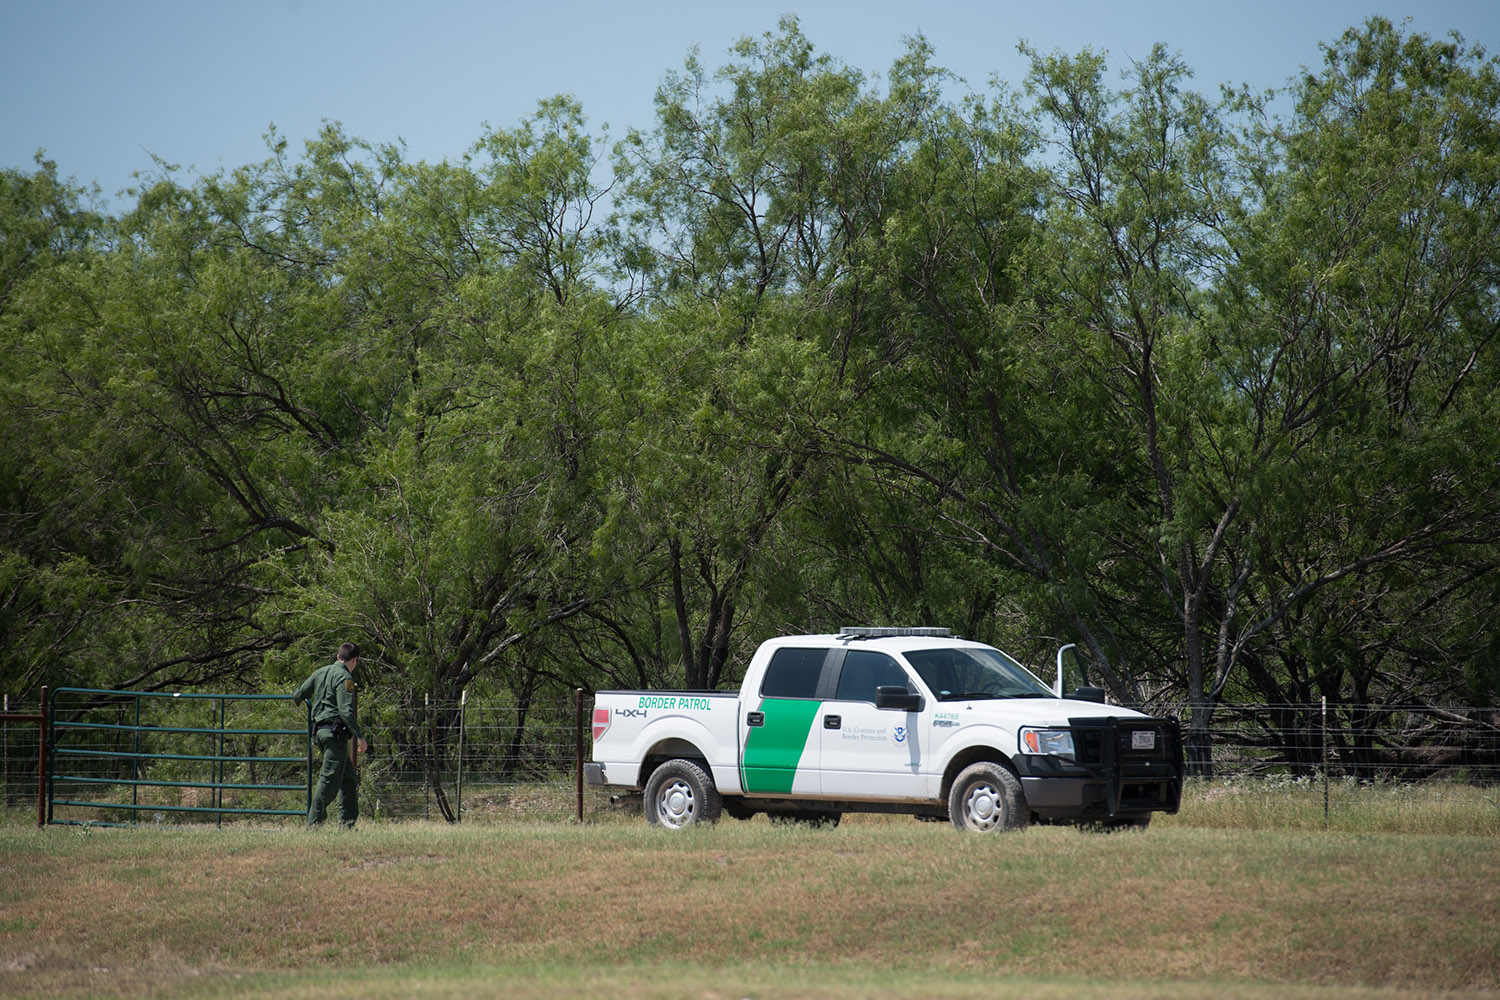 A Border Patrol agent closes a gate at the Eagle Point development in Eagle Pass.